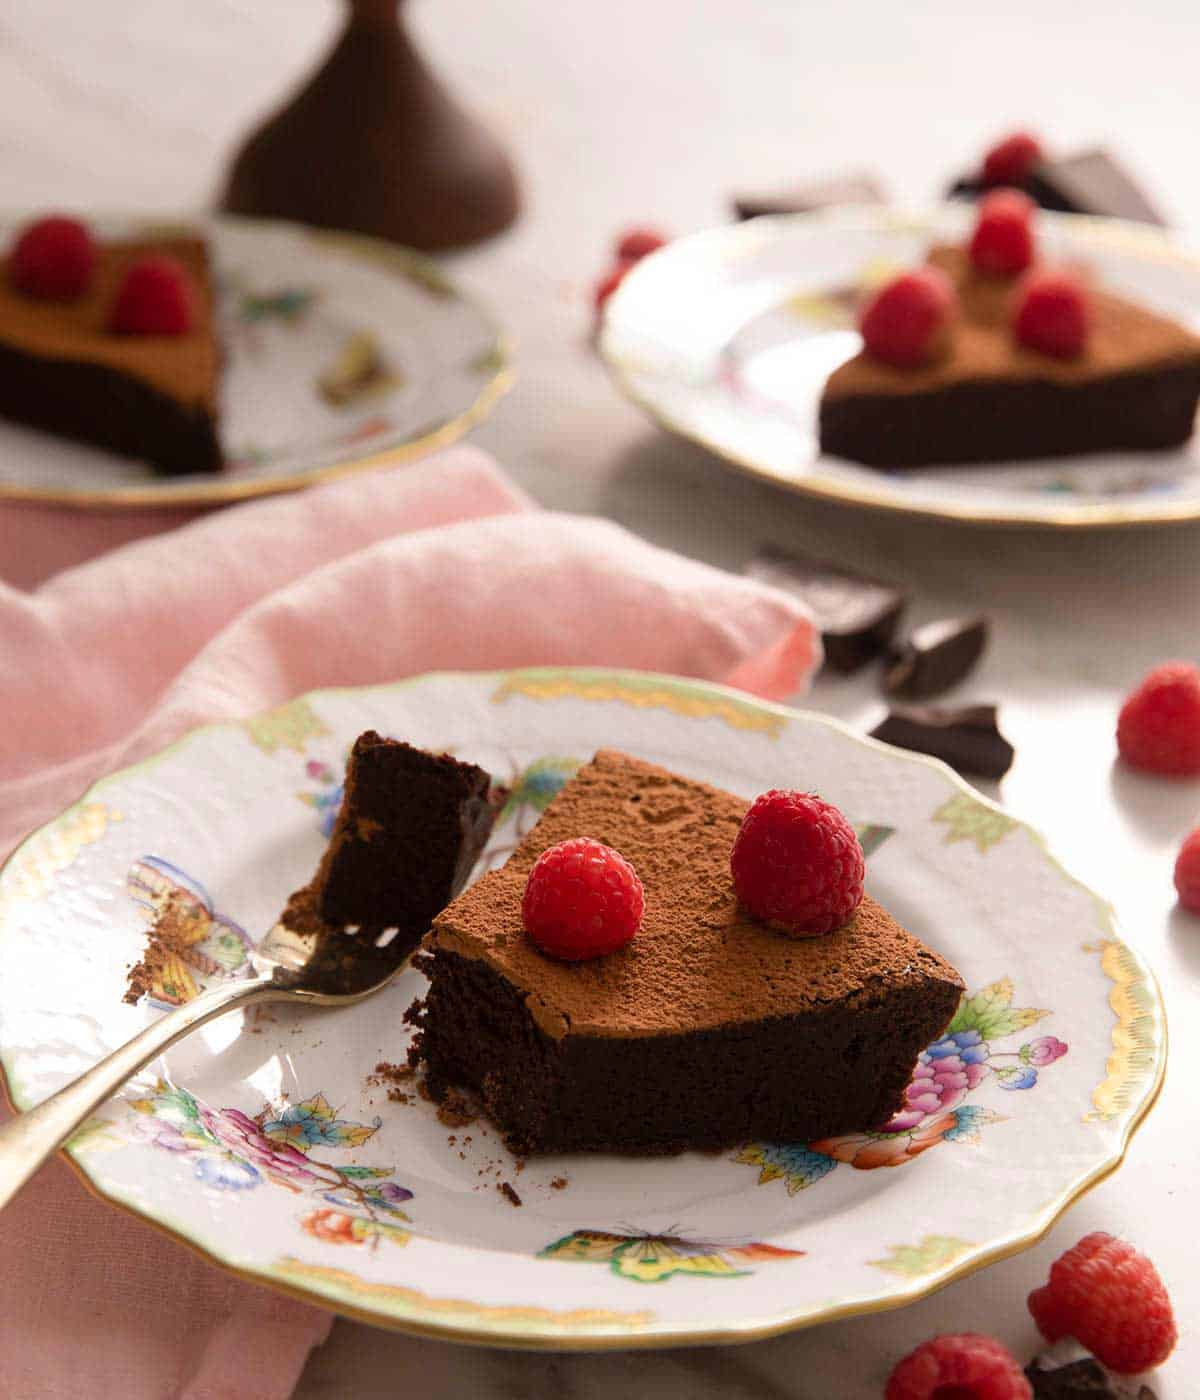 A slice of chocolate cake on a plate with a bite out